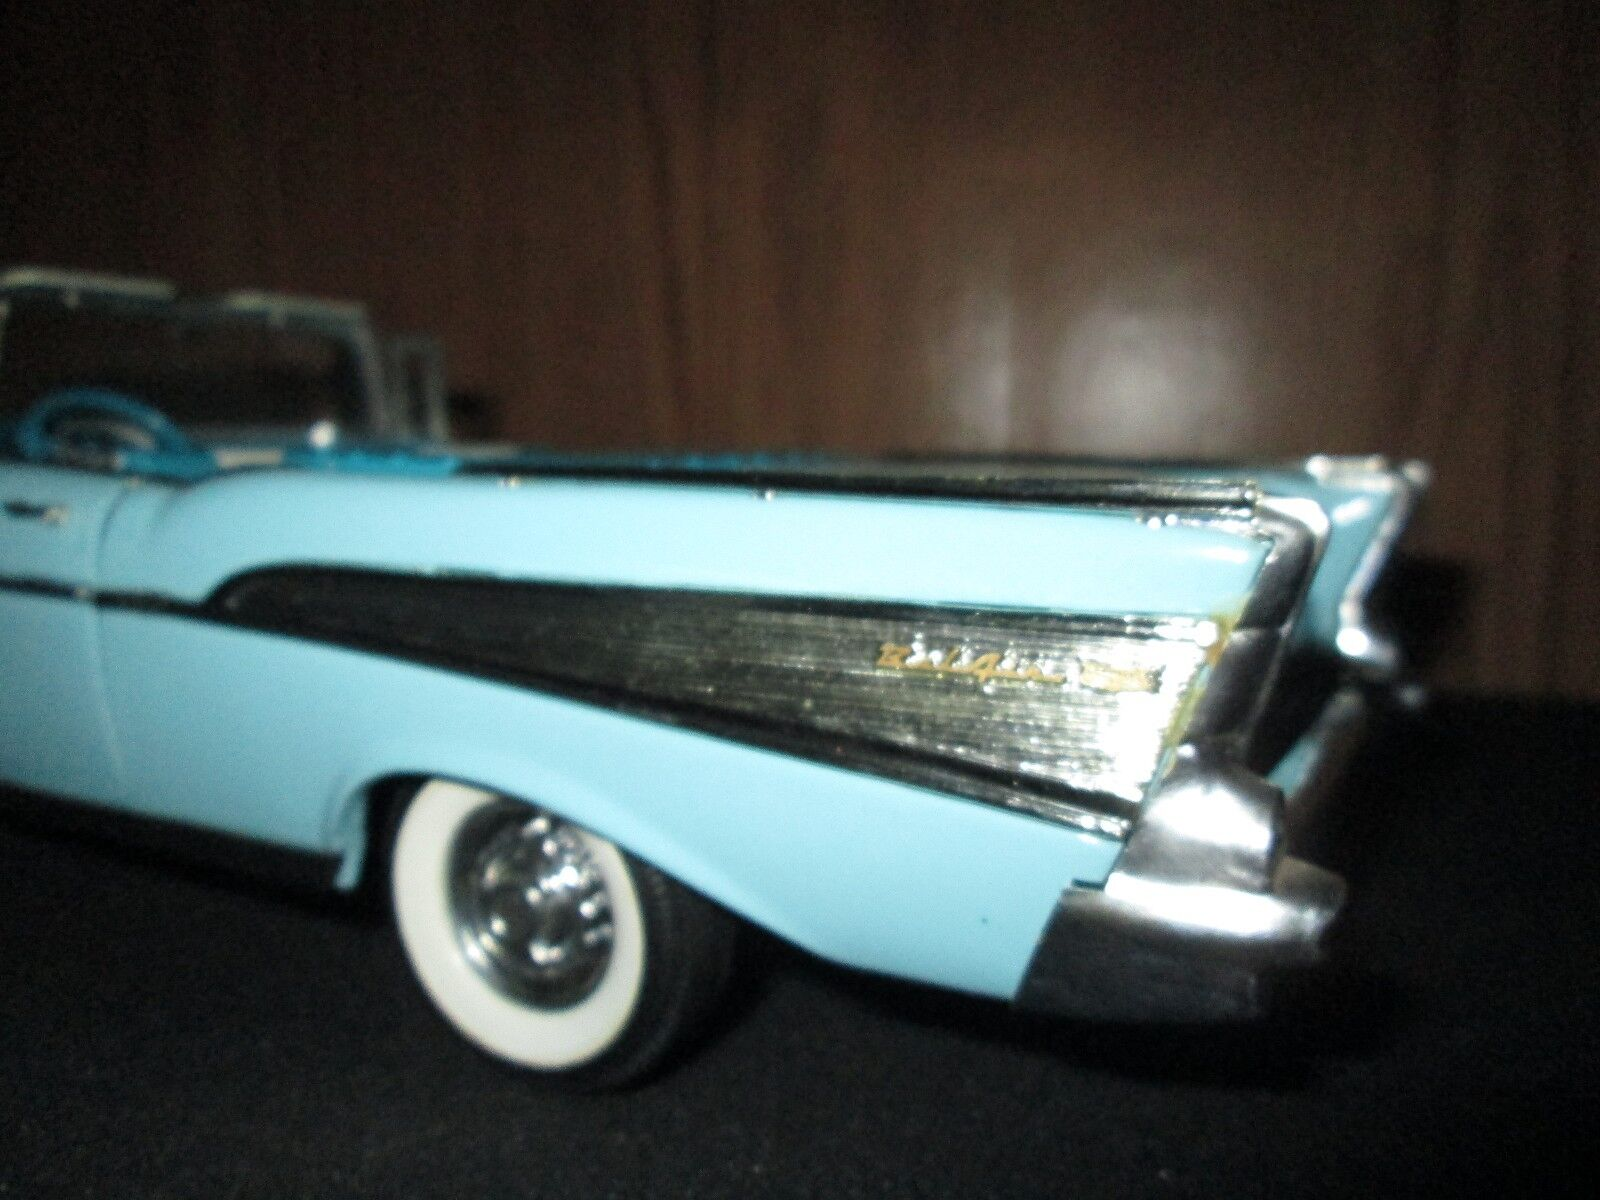 1957 chevy Belair Conv blu w/ Chrome fin 1st 1/18 /chase / american muscle 1991